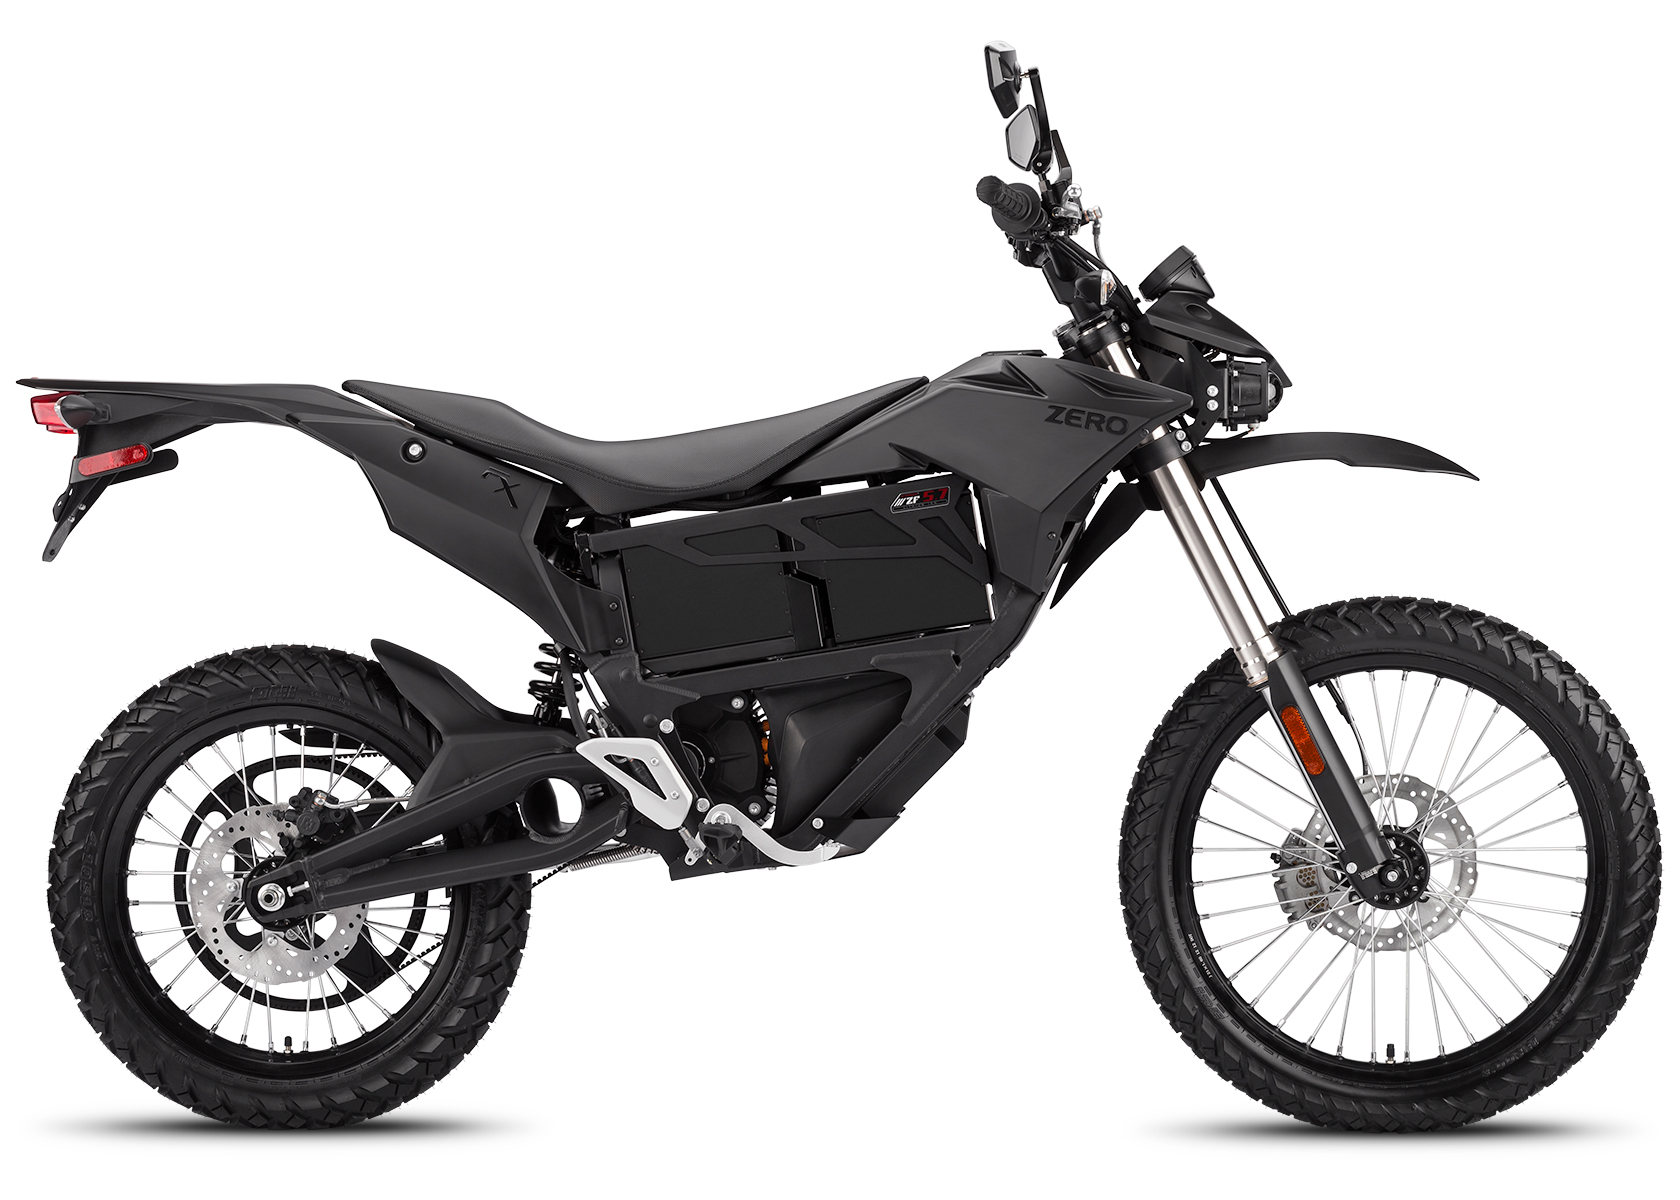 2014 Zero FX Electric Motorcycle: Black Profile Right, White Background